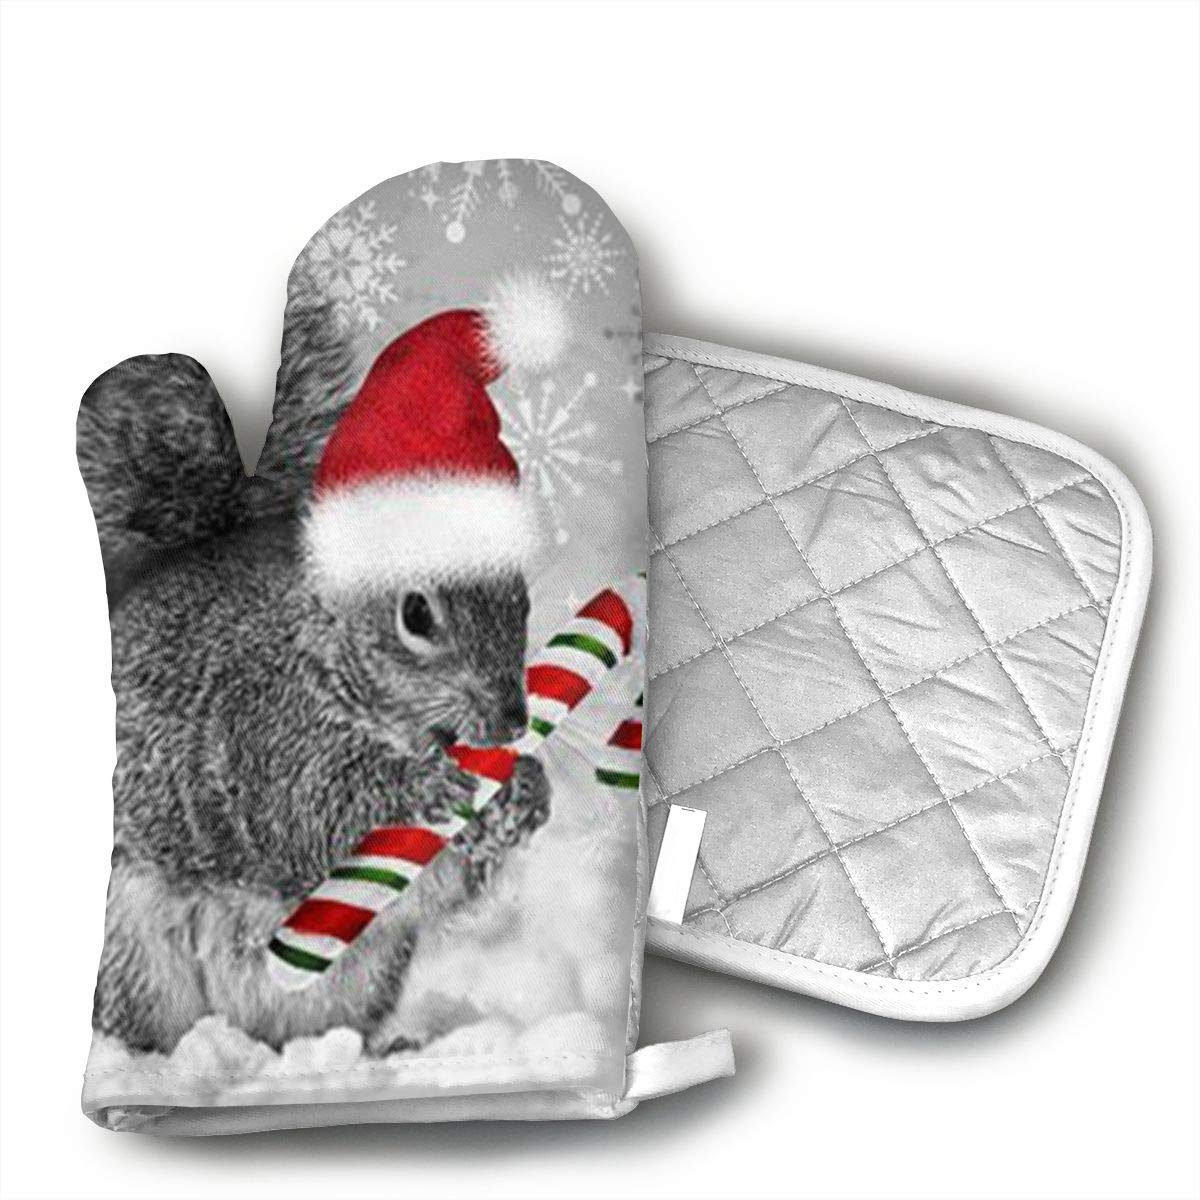 Christmas Squirrel,Candy Cane,Oven Mitts Kitchen Gloves and Pot Holders 2pcs for Kitchen Set with Cotton Neoprene Silicone Non-Slip Grip,Heat Resistant,Oven Gloves for BBQ Cooking Baking Grilling